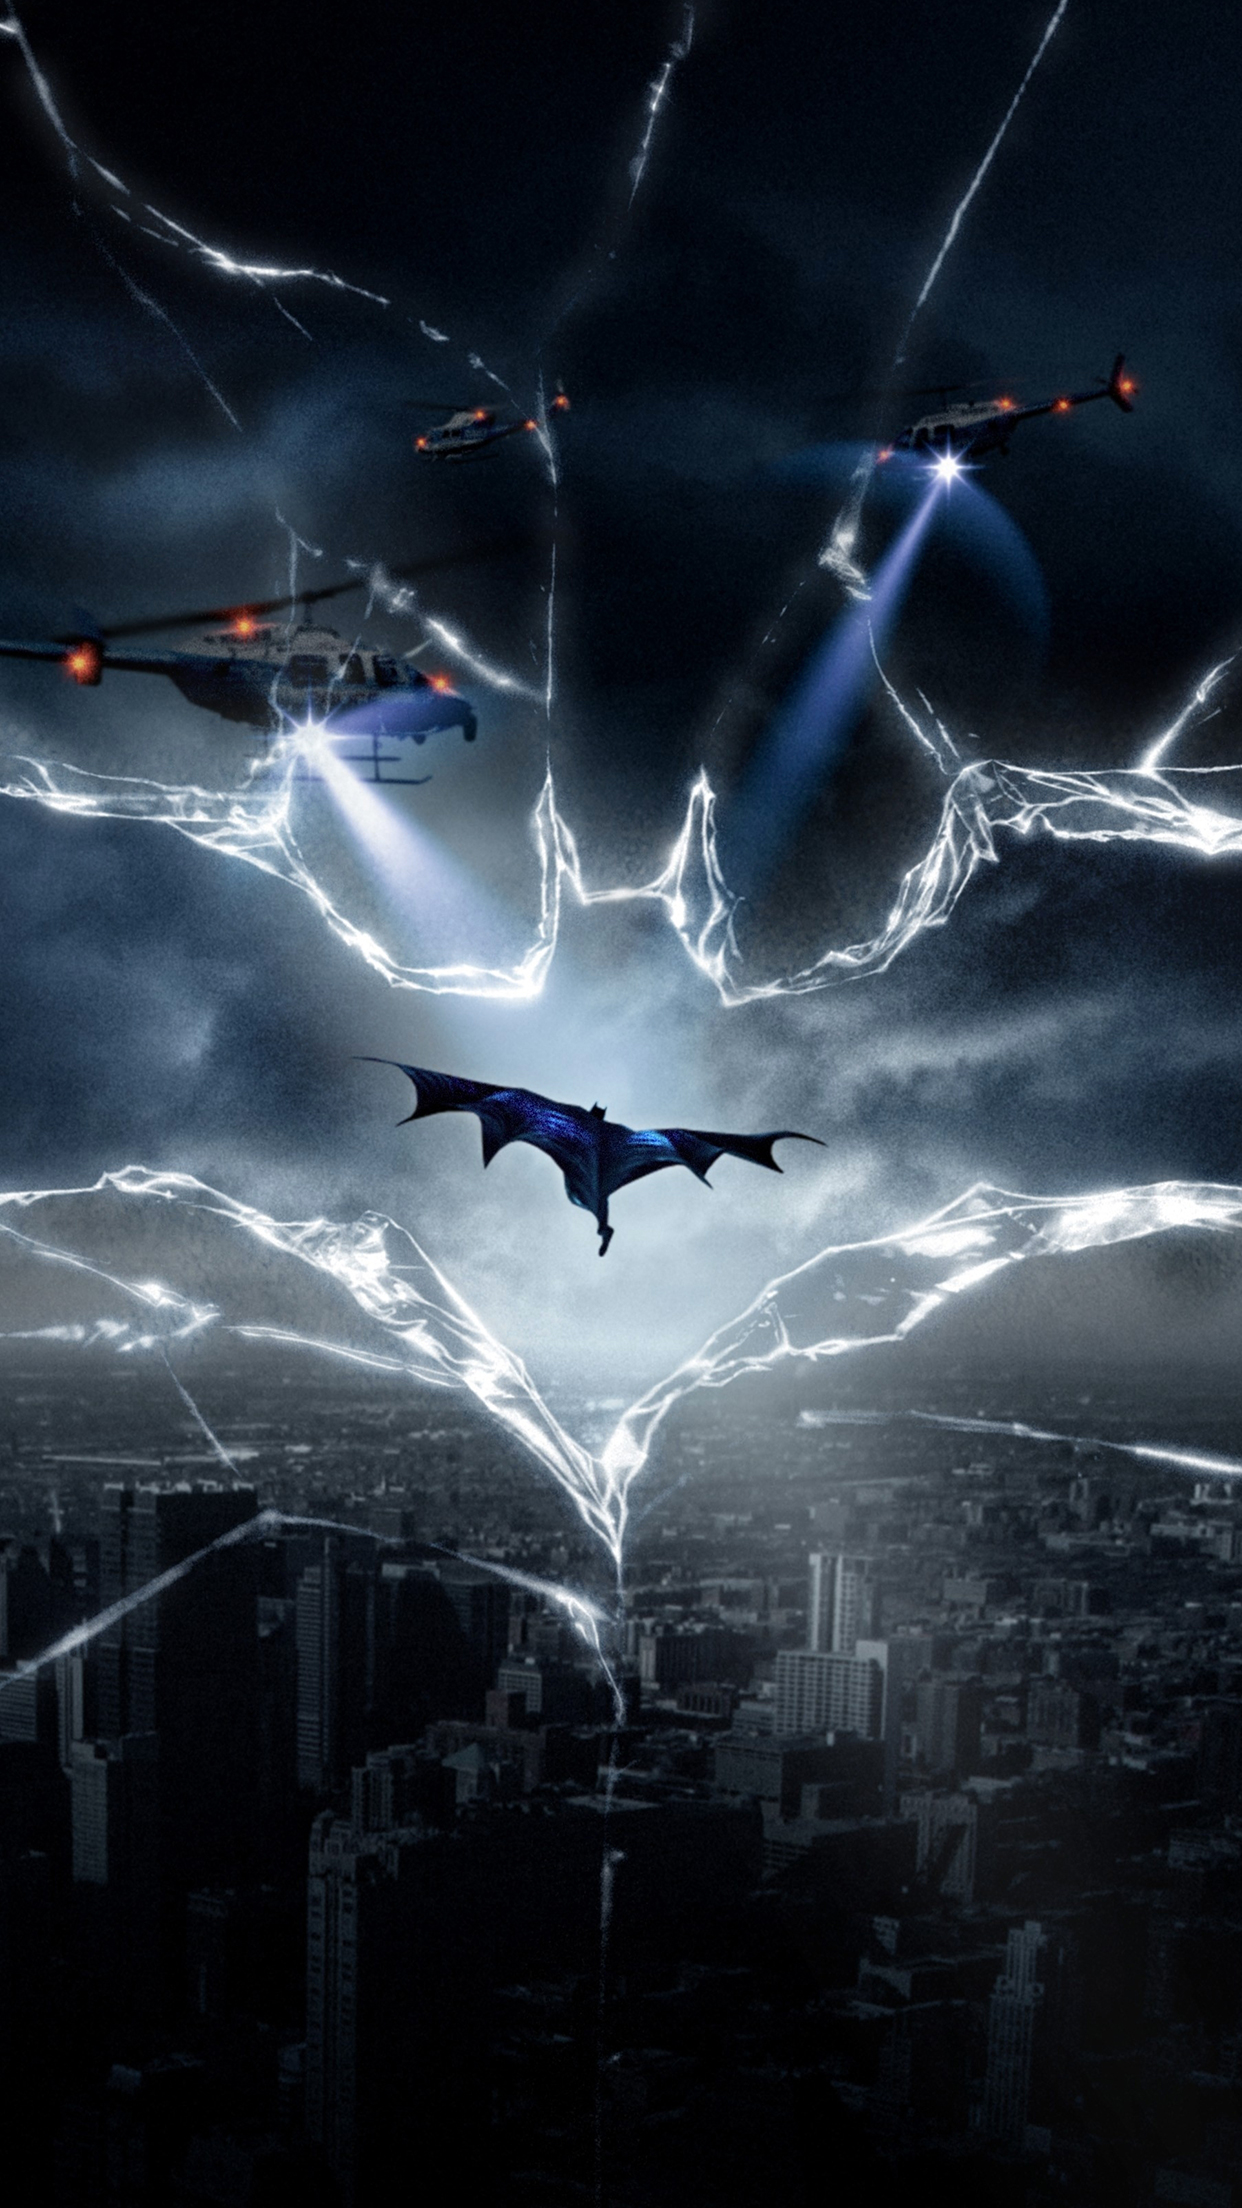 Batman Helicopters Wallpaper For Iphone X 8 7 6 Free